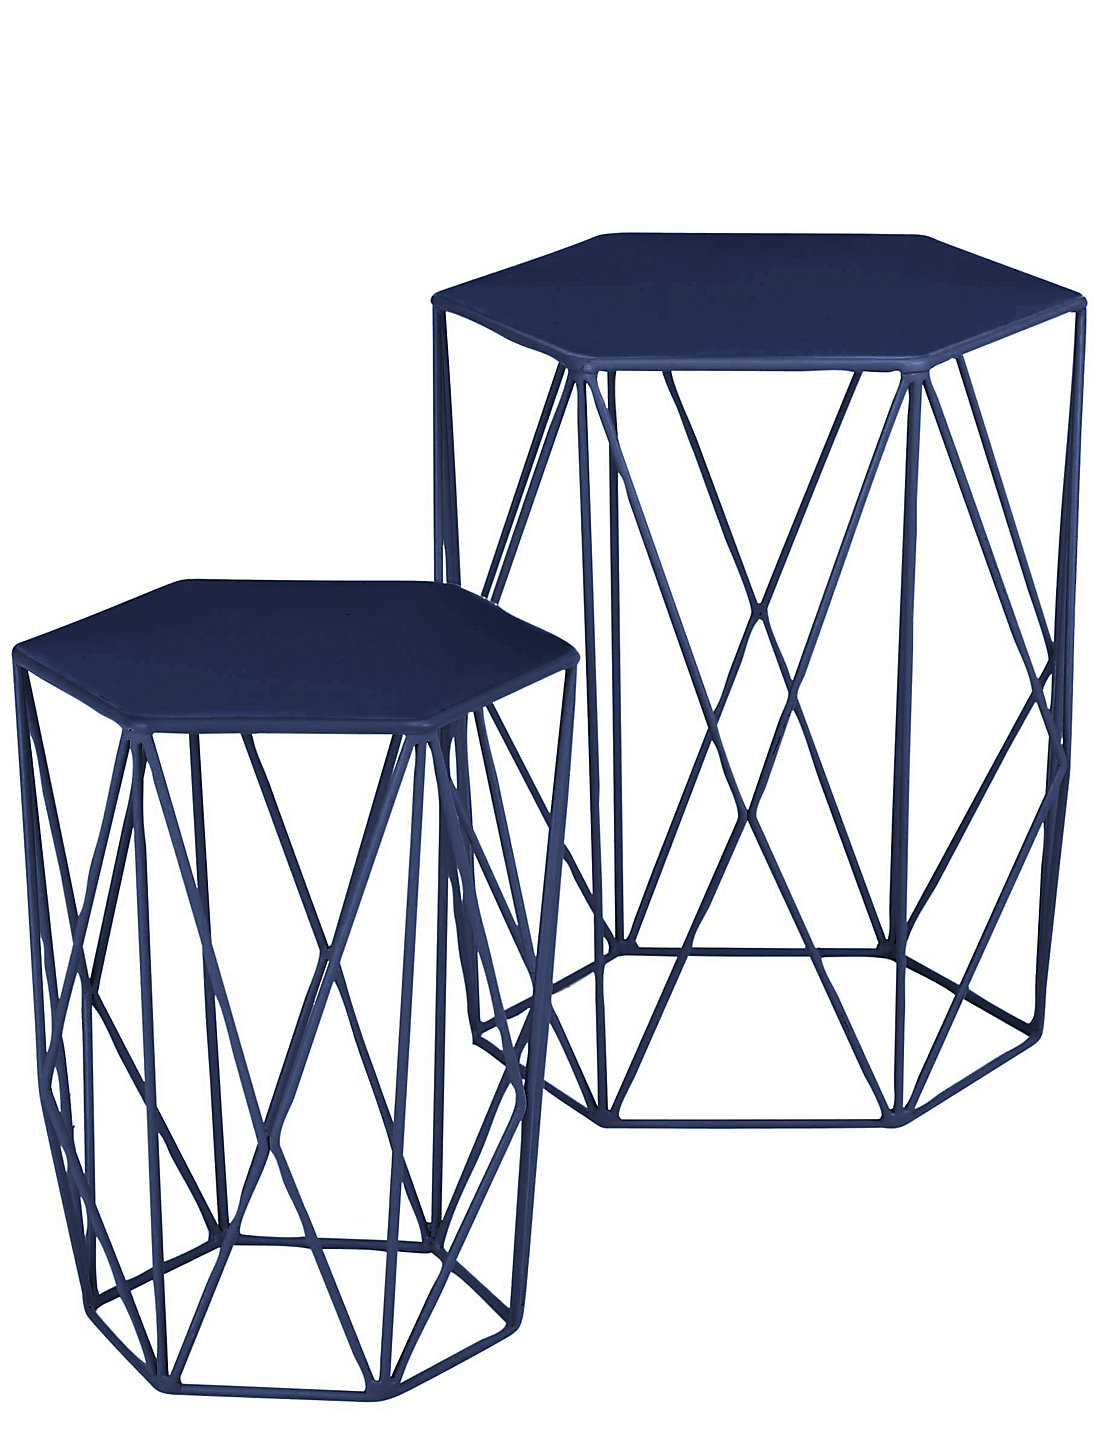 Wire nest of tables navy ms wire nest of tables navy geotapseo Choice Image